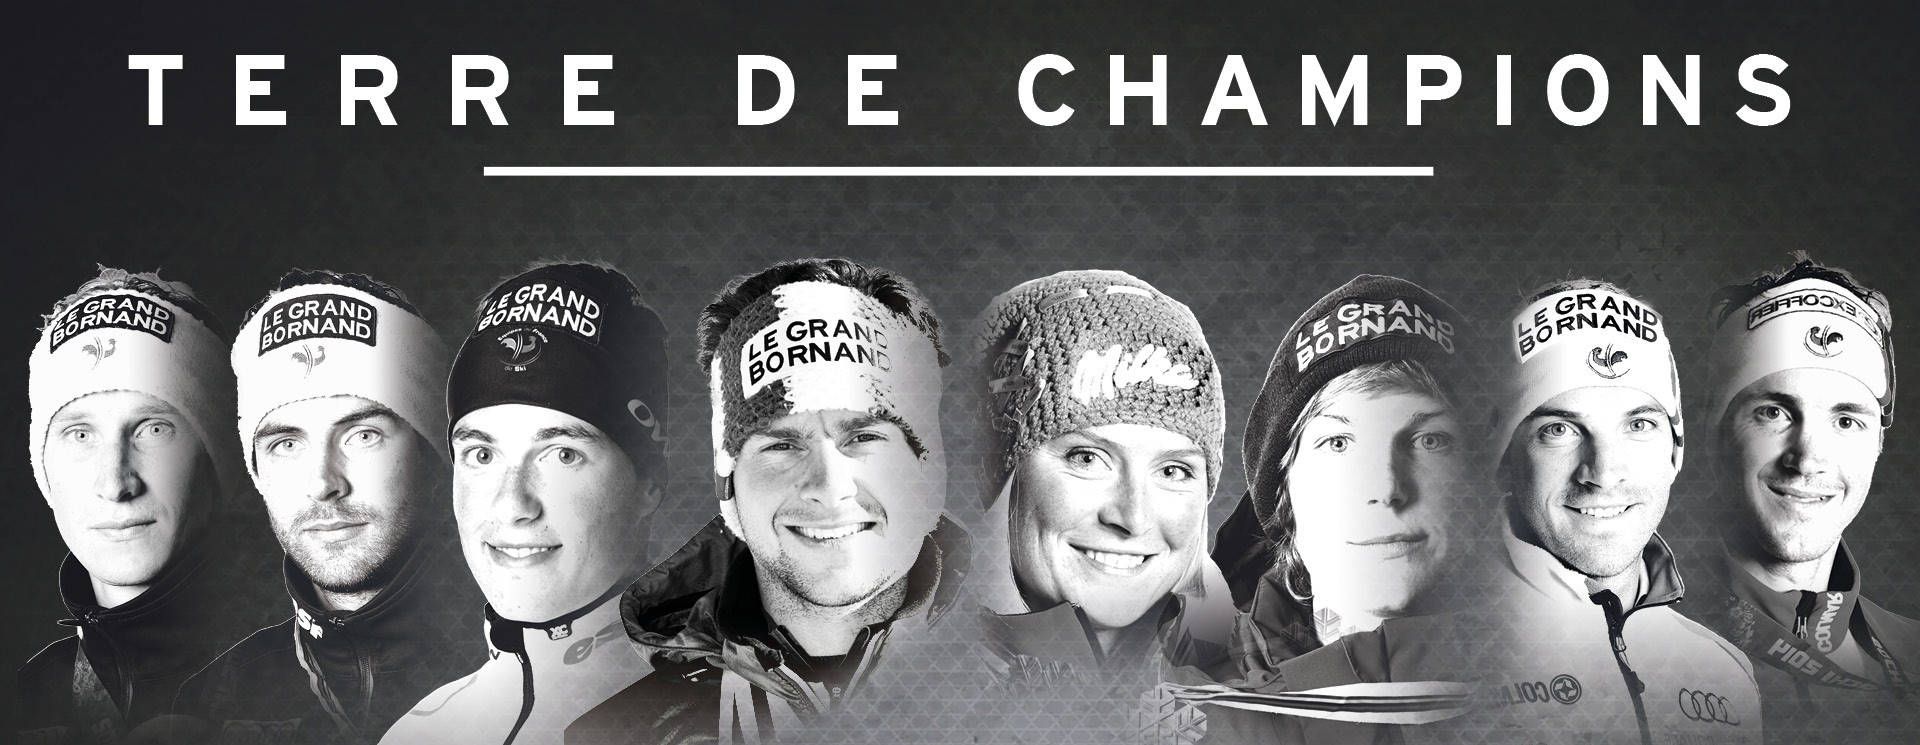 images-champions-1920x745-5877